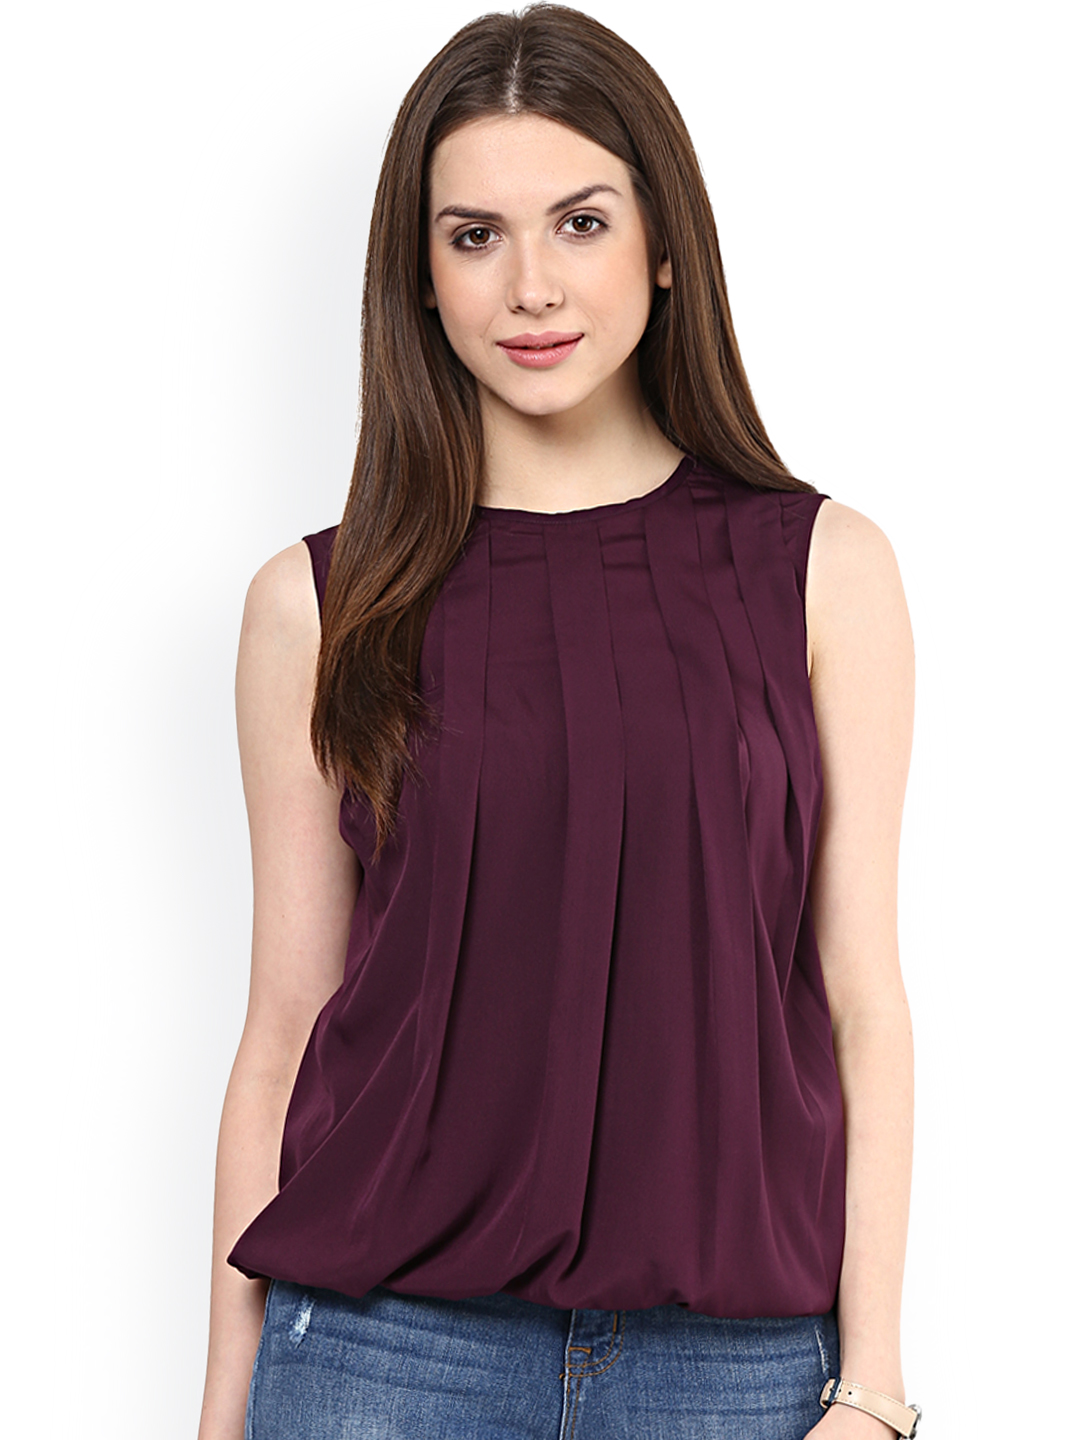 Fill your wardrobe with Latest trends in ladies tops